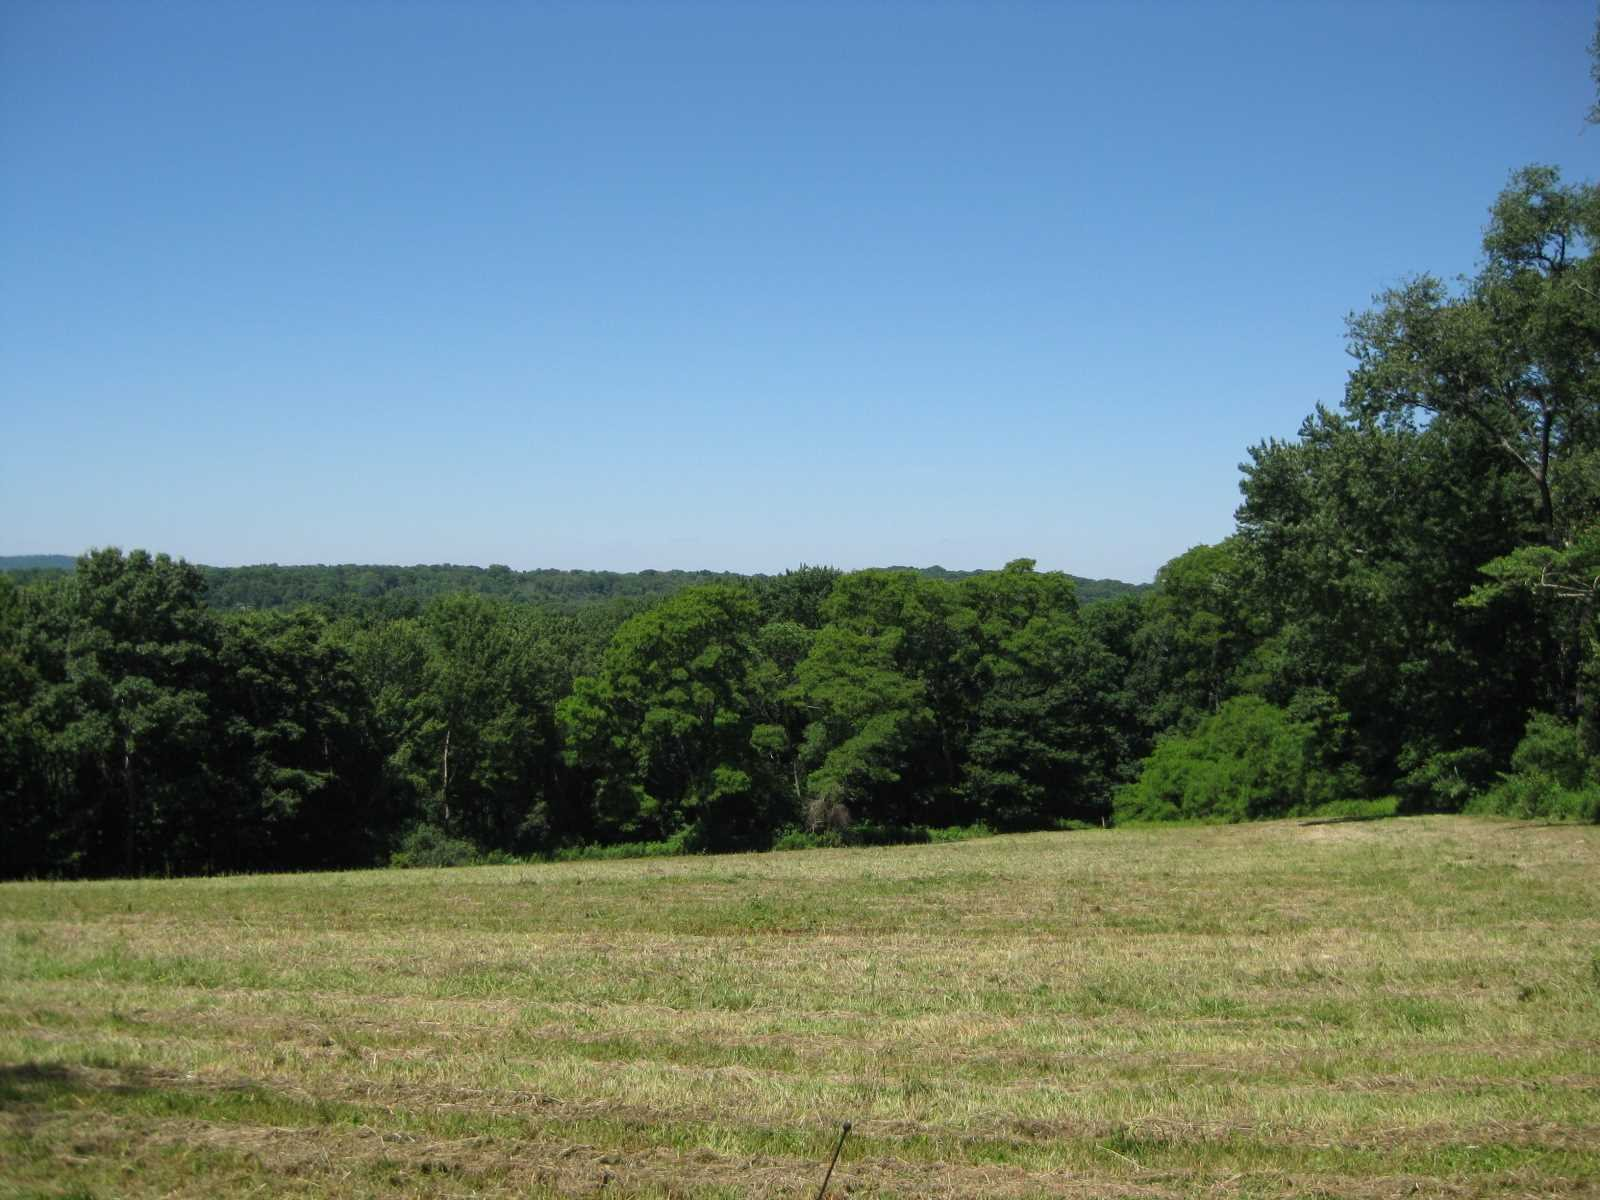 Land for Sale at 560 CHESTNUT RIDGE ROAD 560 CHESTNUT RIDGE ROAD Dover Plains, New York 12522 United States